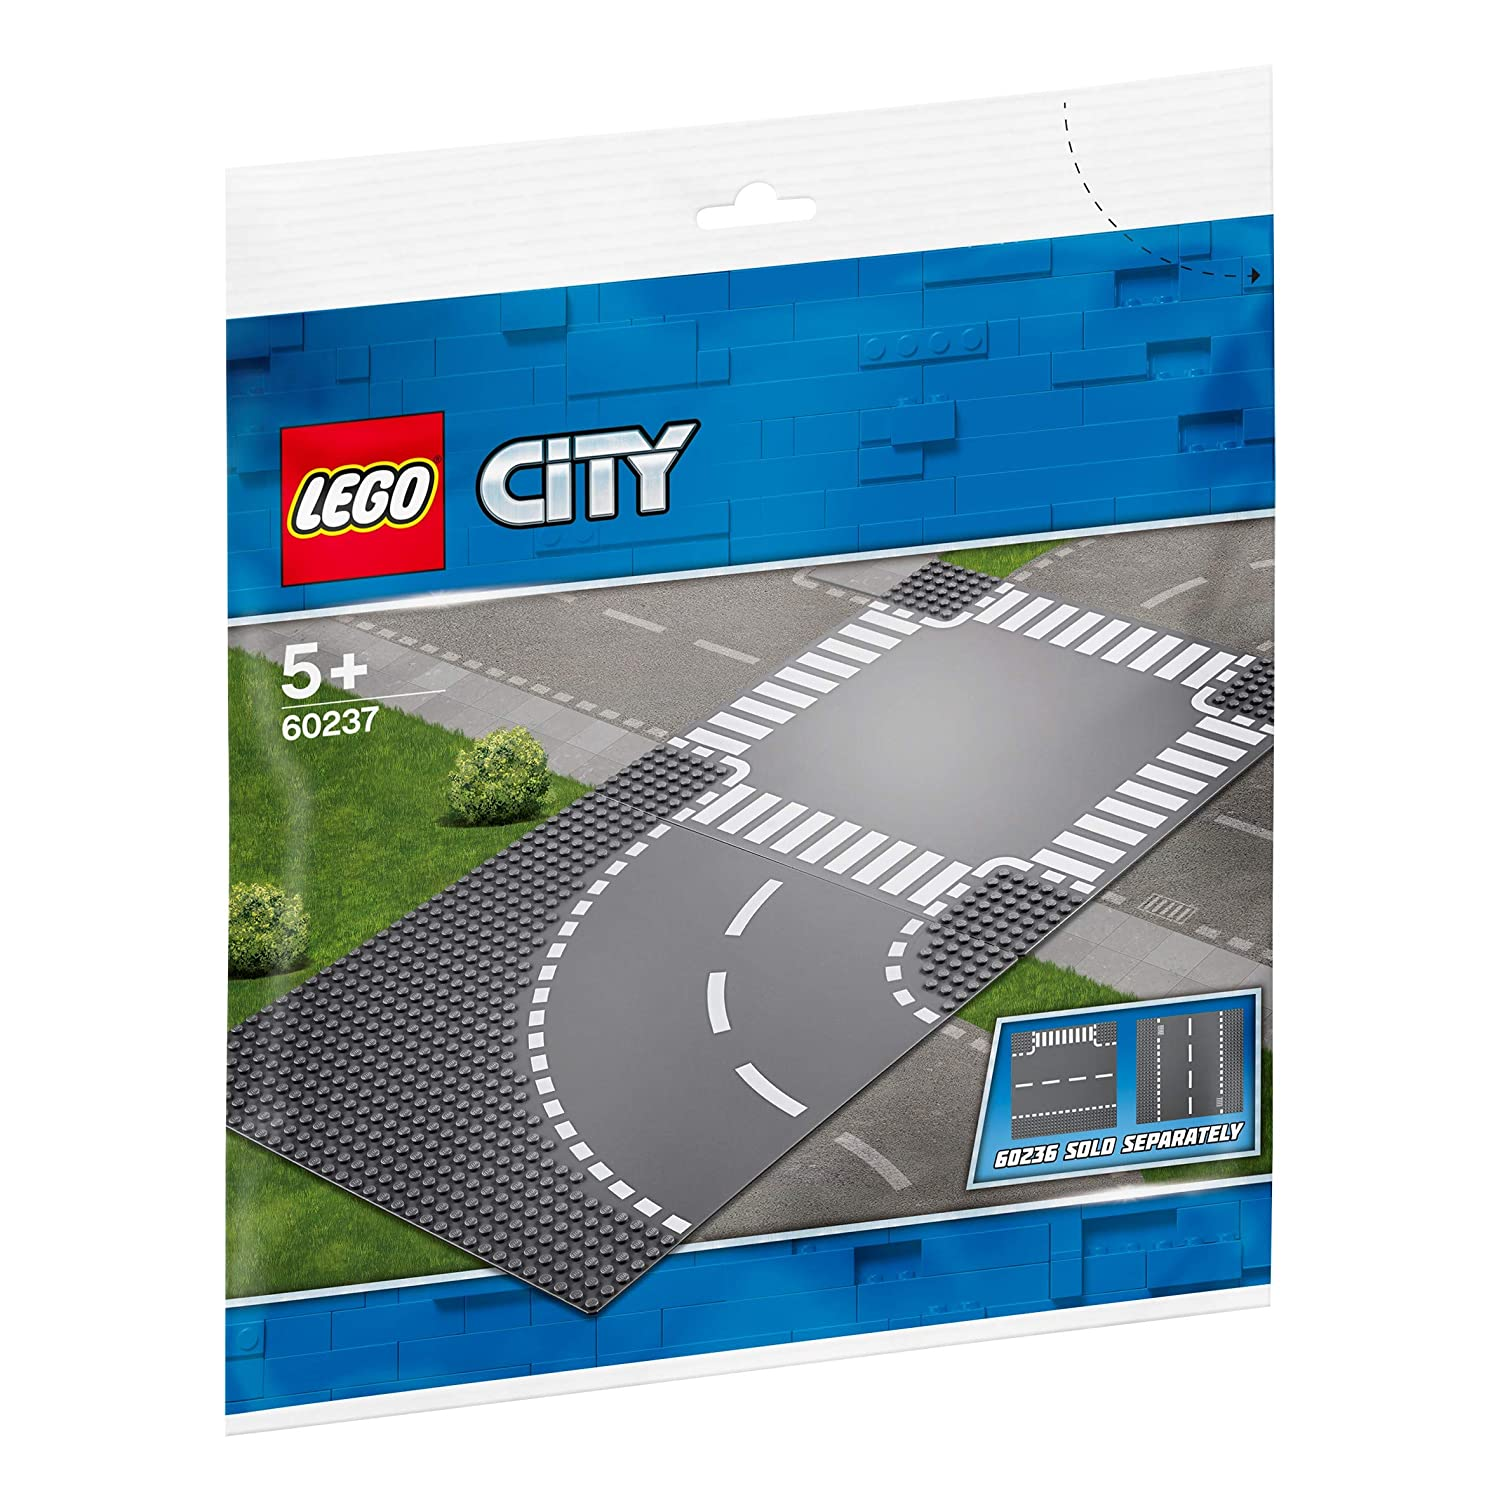 New 2019 2 Piece LEGO City Curve and Crossroad 60237 Building Kit